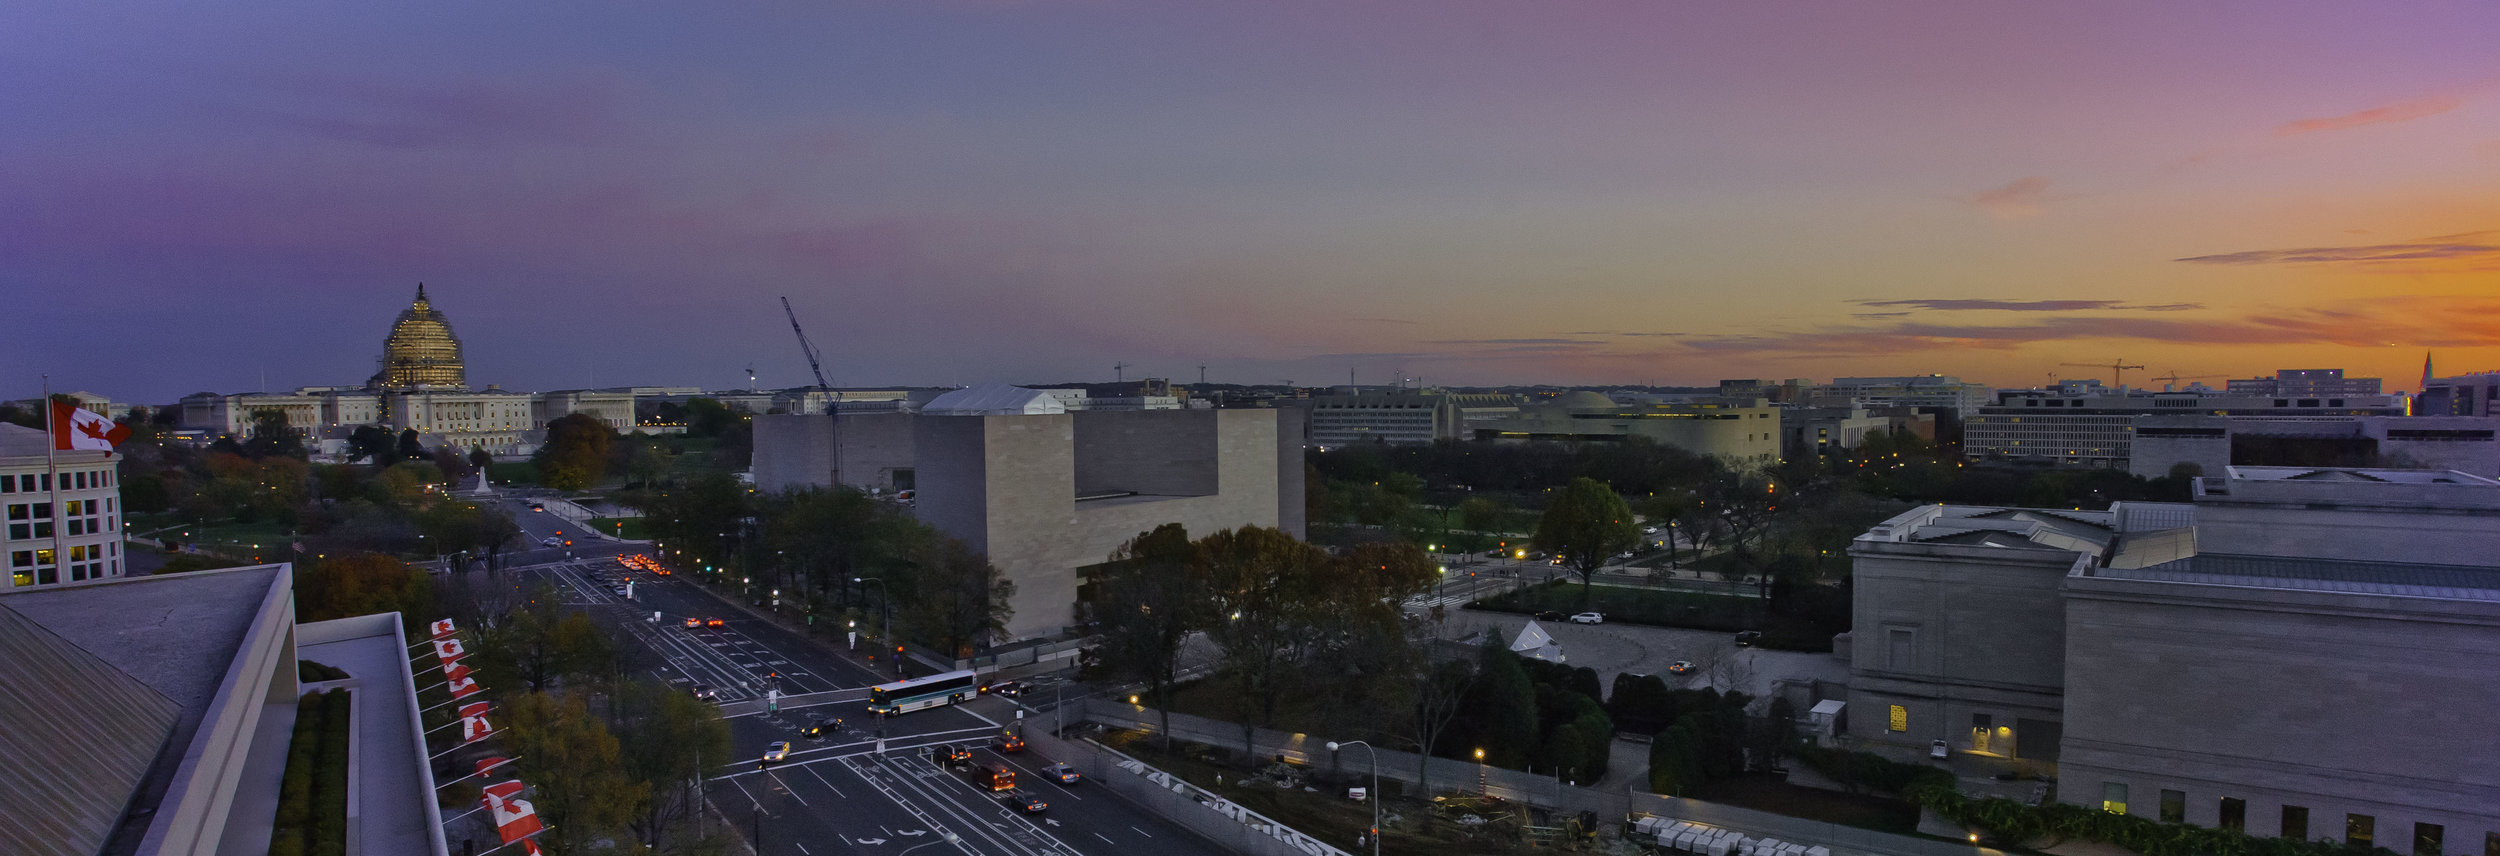 DC - Capitol Aerials from Newseum-093-2.jpg